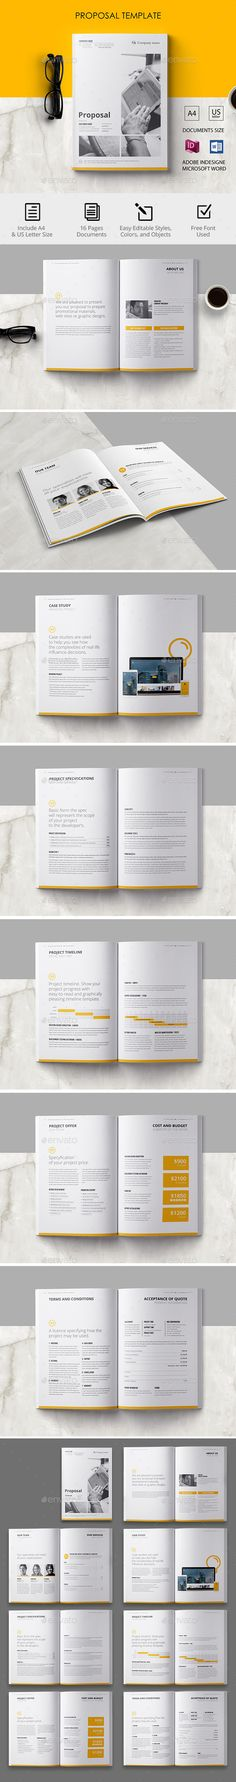 Proposal More Proposals, Proposal templates and Stationery ideas - proposal templates